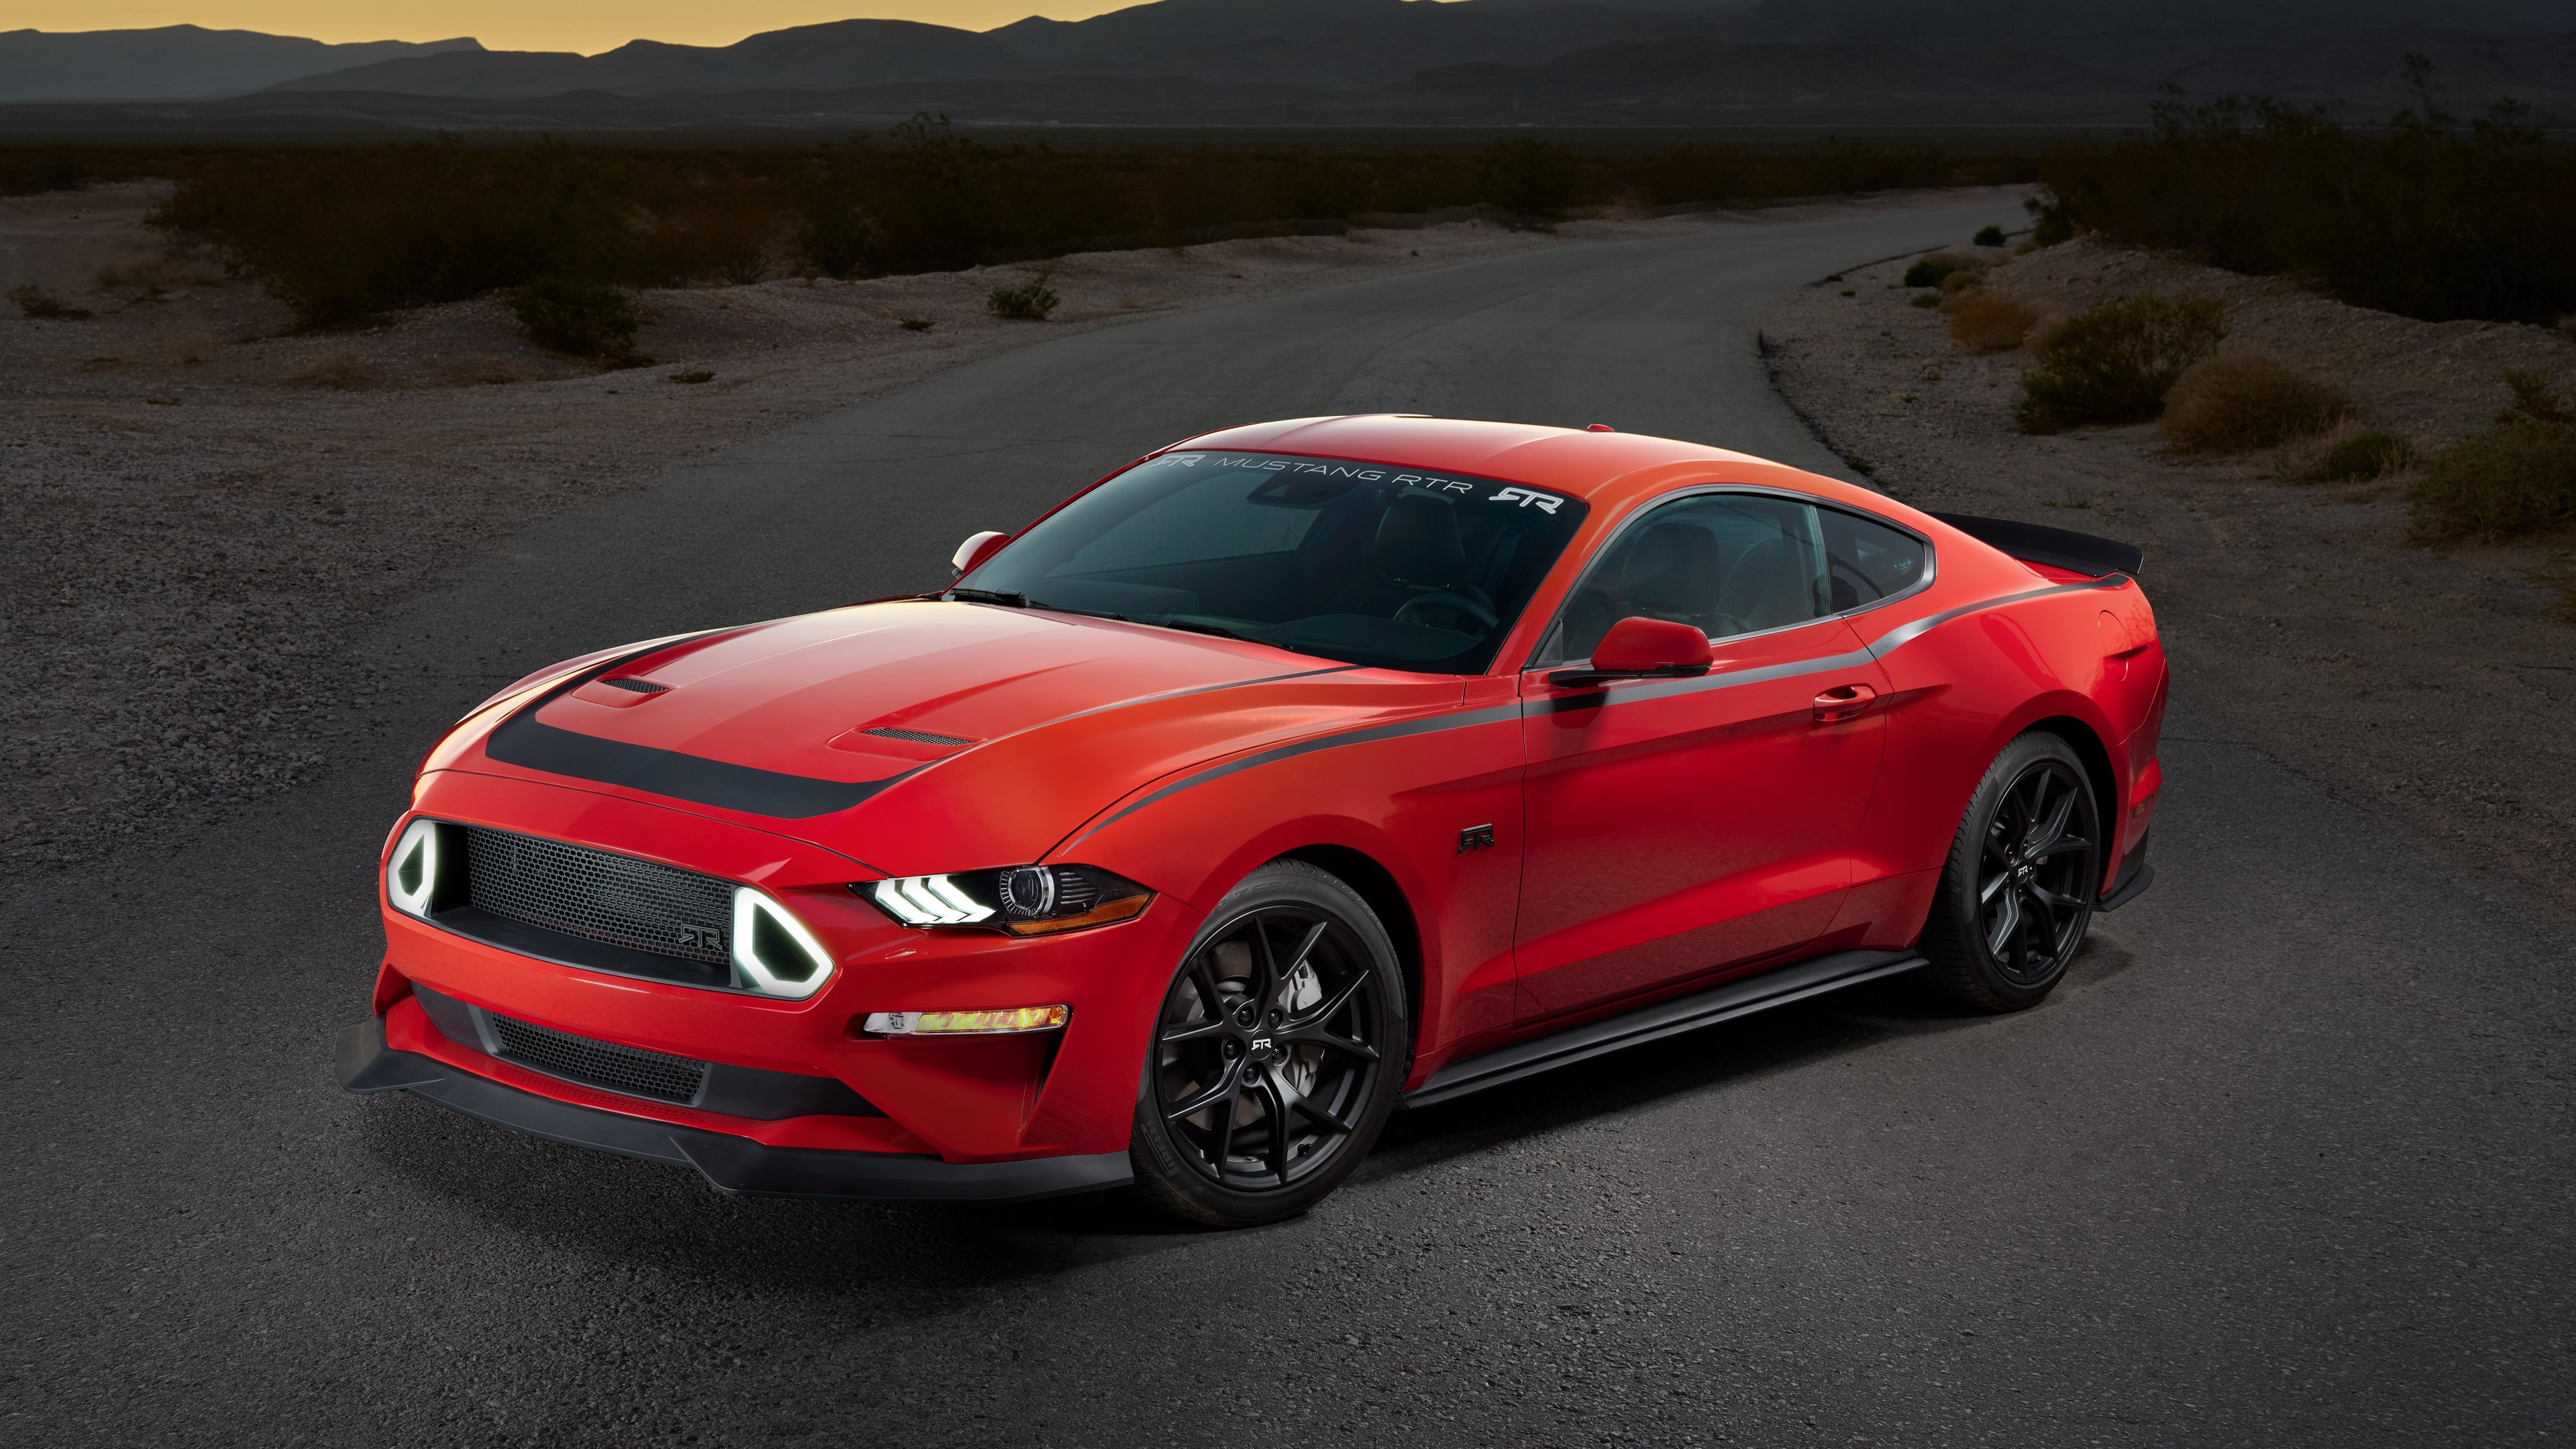 2019 series 1 ford mustang rtr 4k 1554245091 - 2019 Series 1 Ford Mustang RTR 4k - mustang wallpapers, hd-wallpapers, ford mustang wallpapers, cars wallpapers, 8k wallpapers, 5k wallpapers, 4k-wallpapers